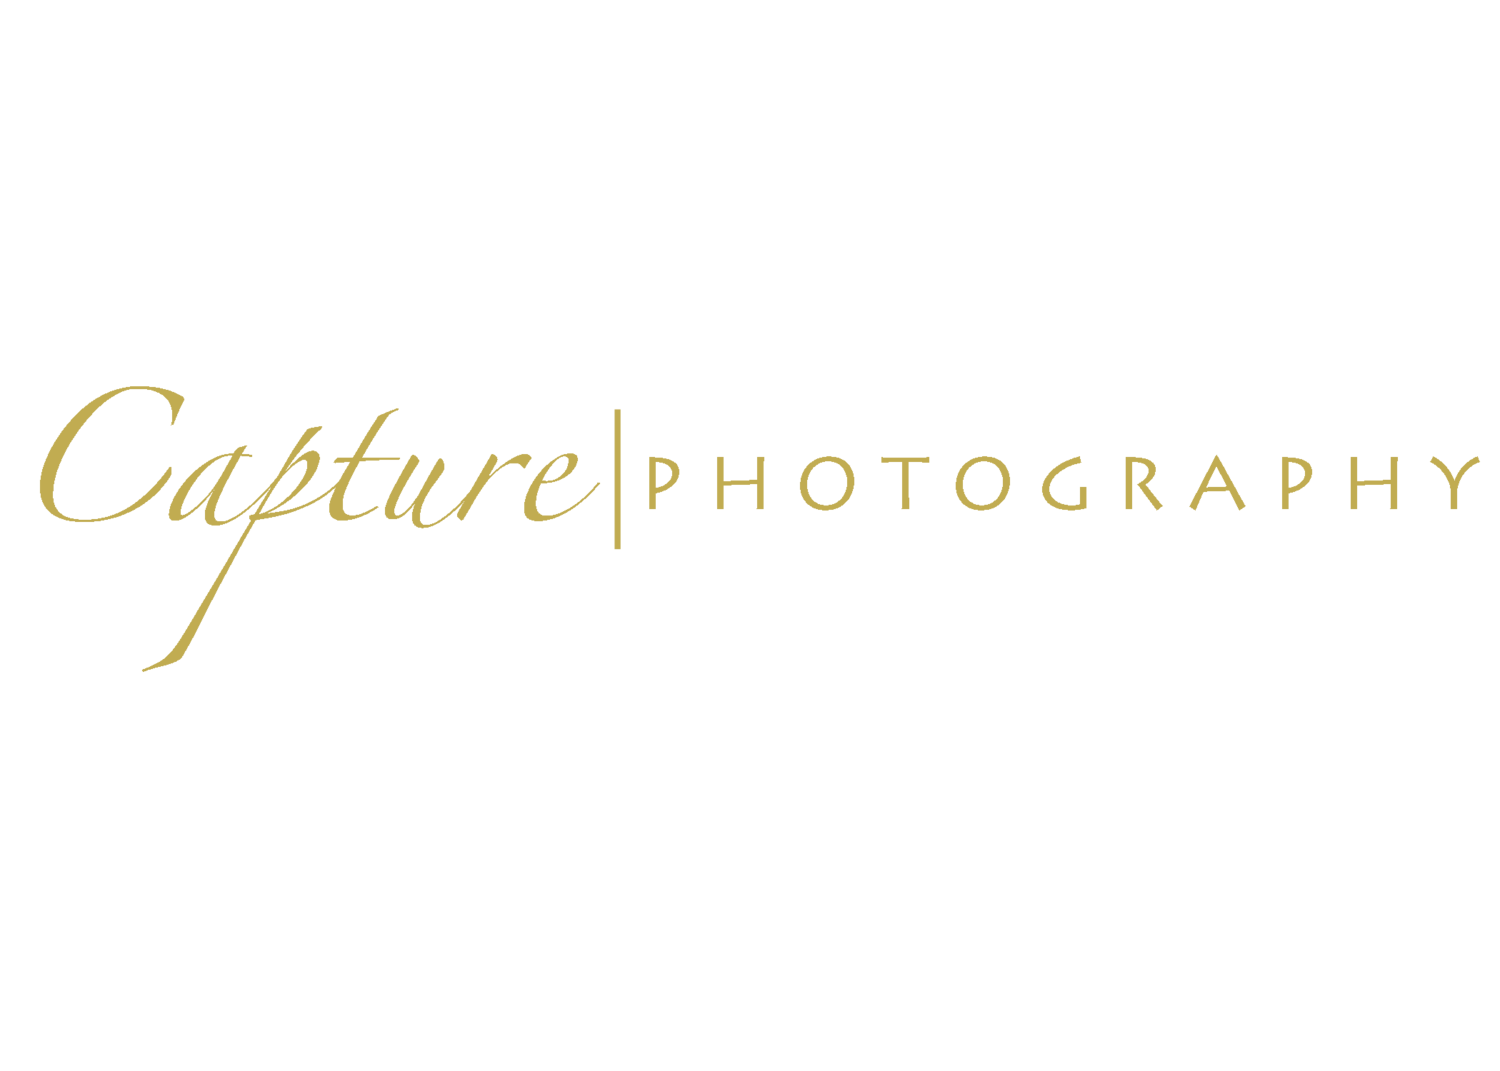 Capture|Photography by Mick & Tiffany